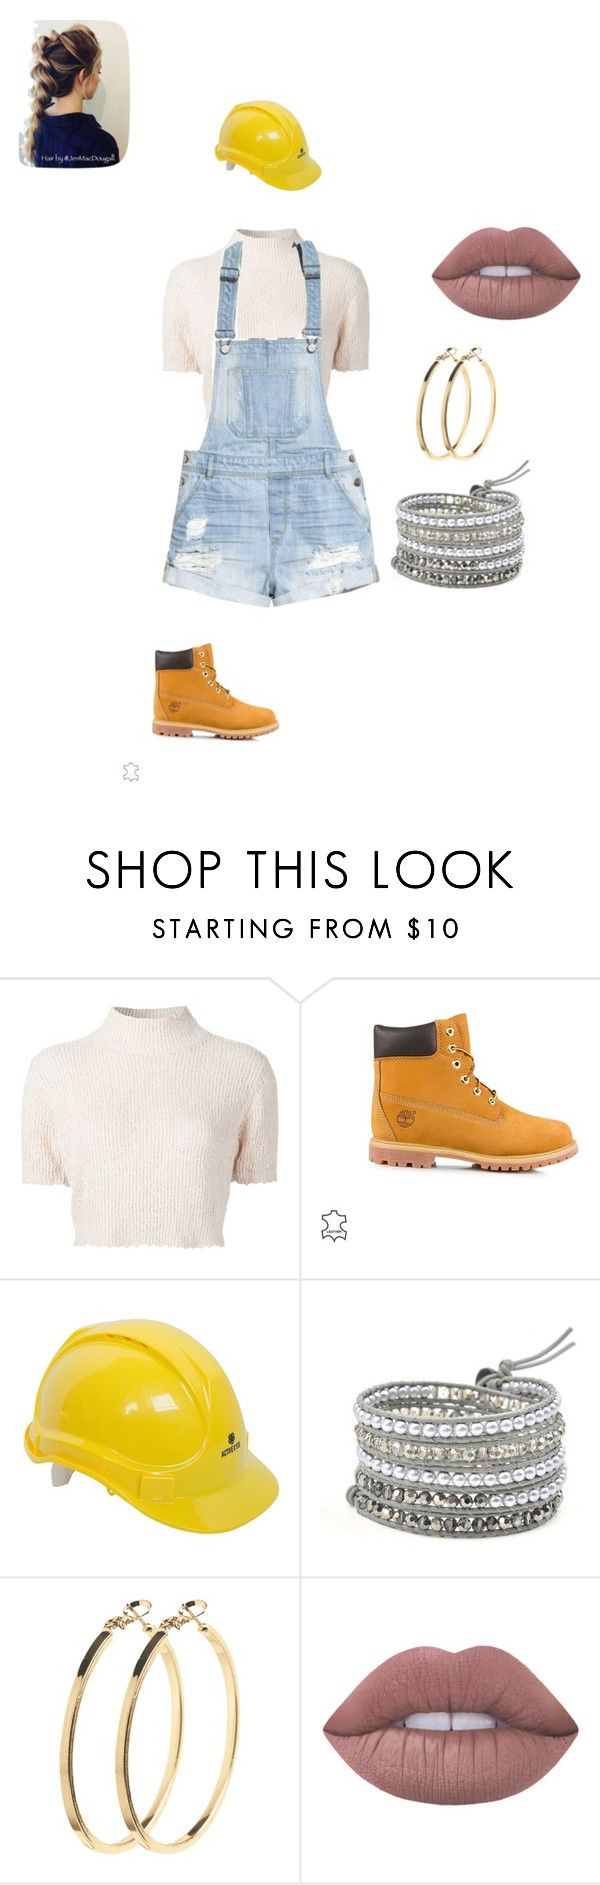 """Fifth Harmoney Wrok From home"" by noell-braylovesashley on Polyvore featuring Rachel Comey, H&M, Timberland, Pieces and Lime Crime"